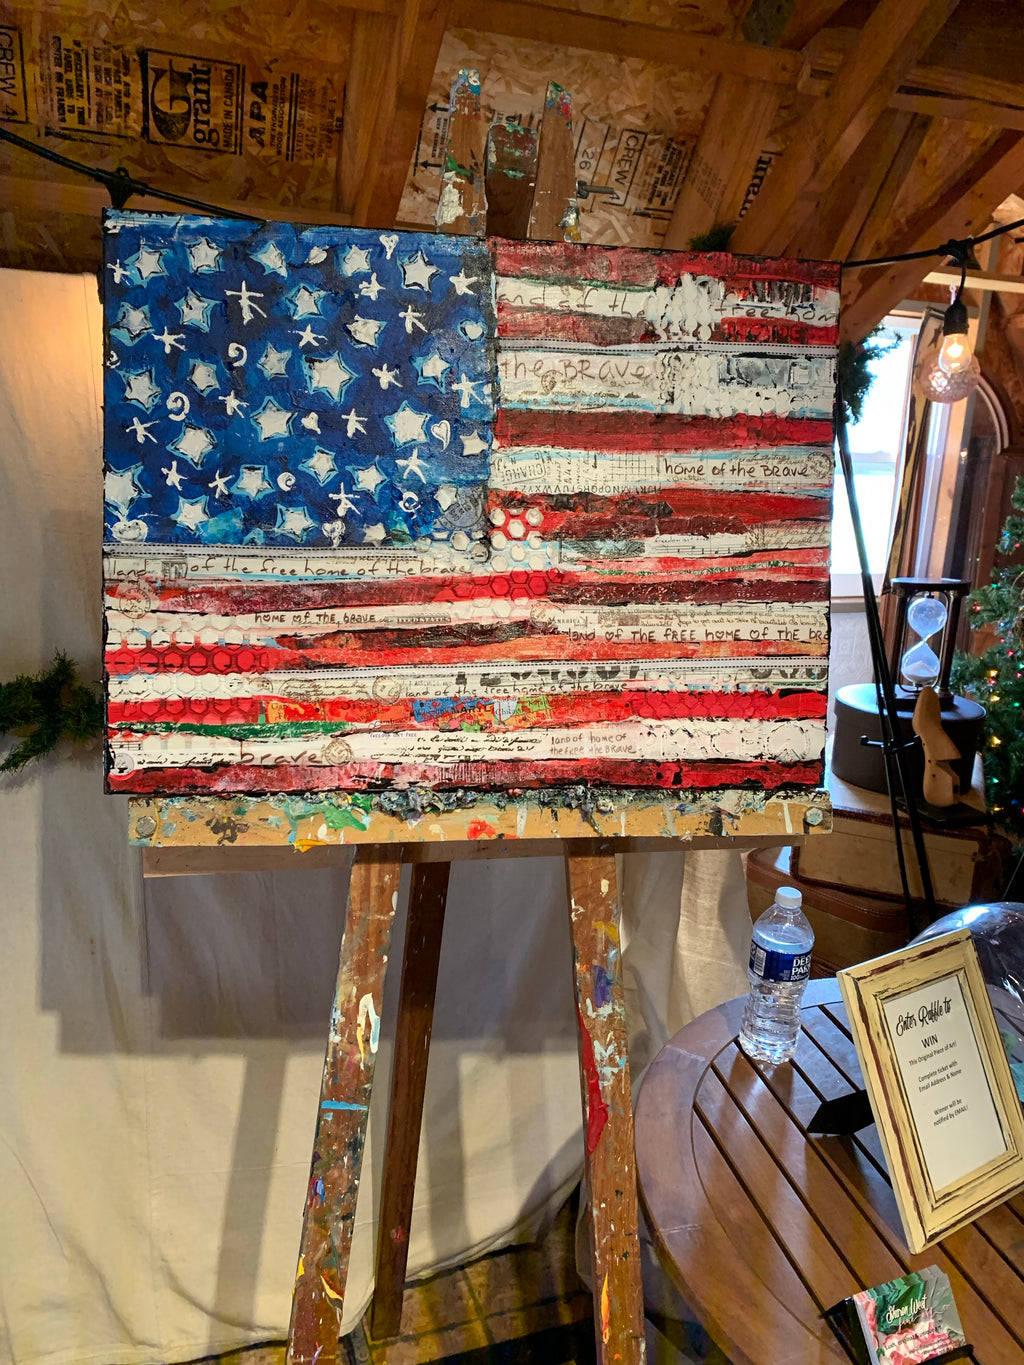 Land of the Free Home of the Brave - Artwork